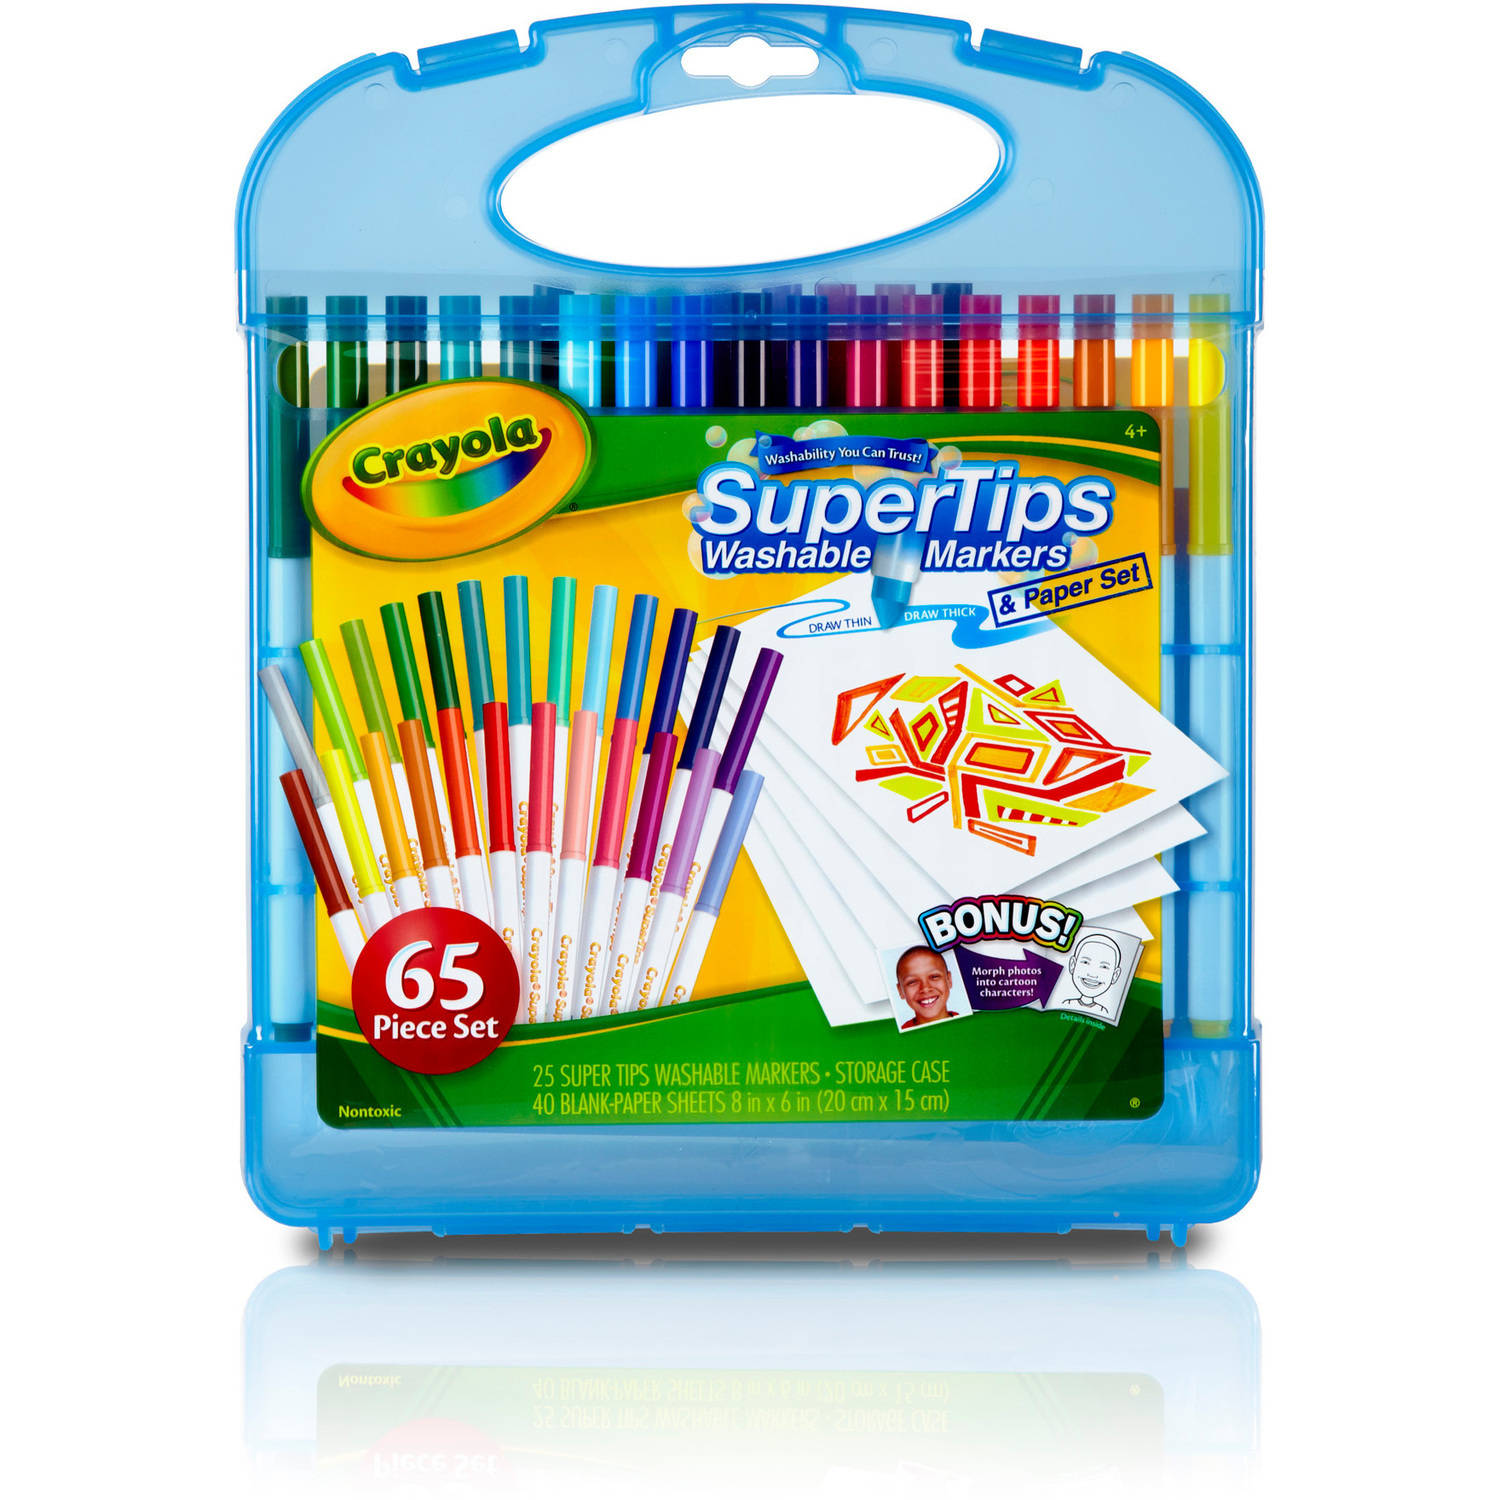 Crayola Washable Super Tips Markers Kit